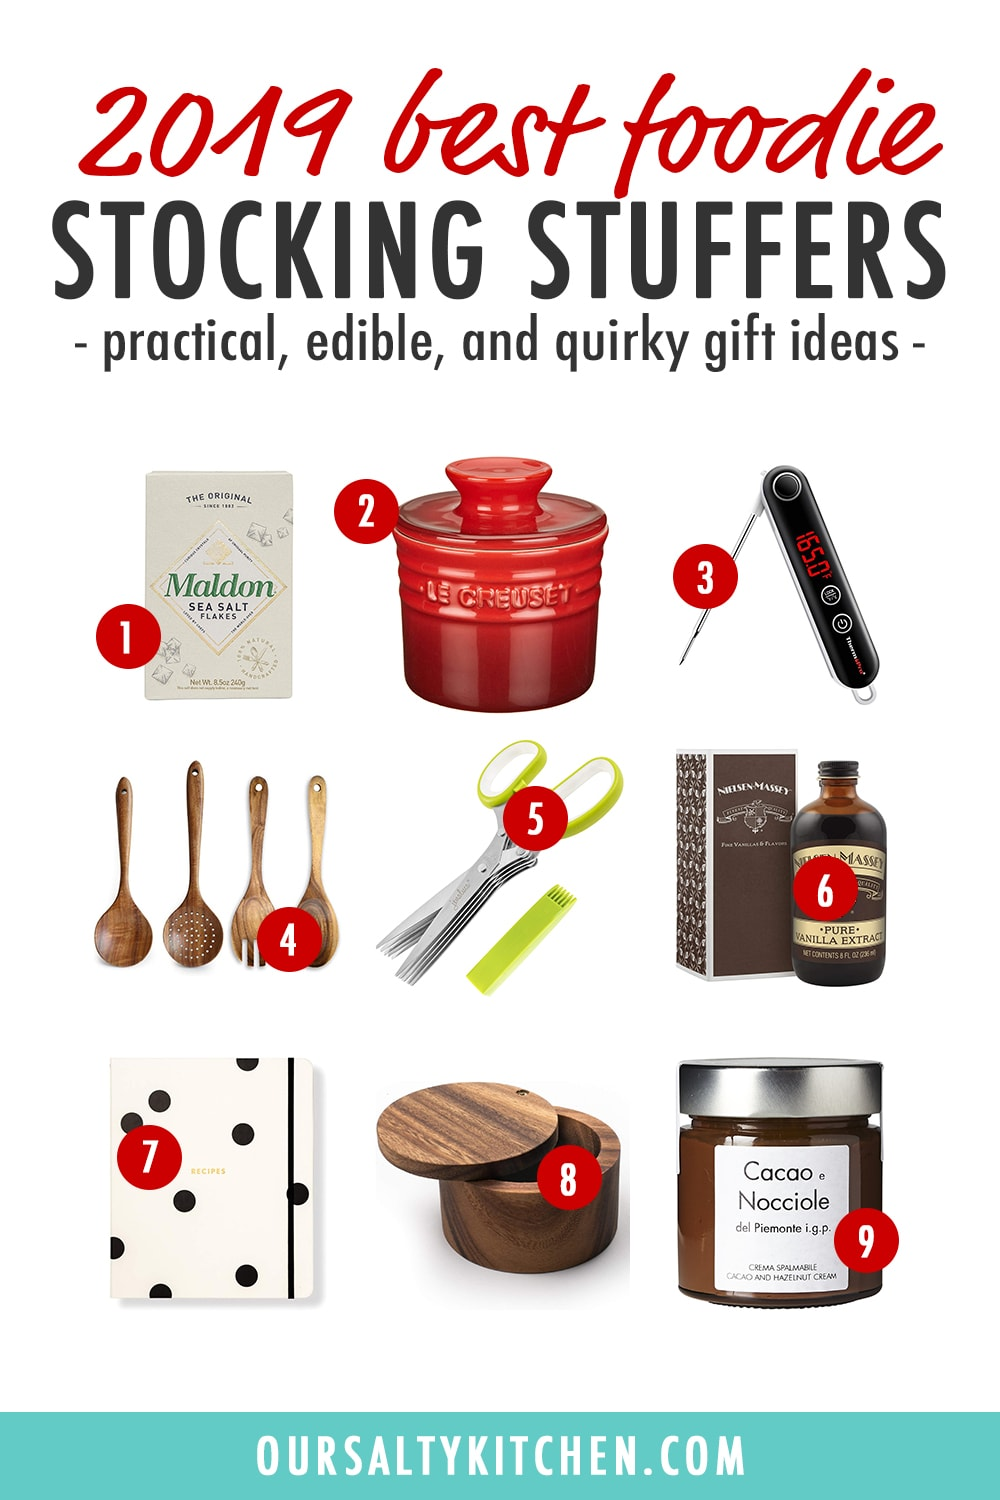 A collage of stocking stuffer gift ideas for foodies and home chefs.